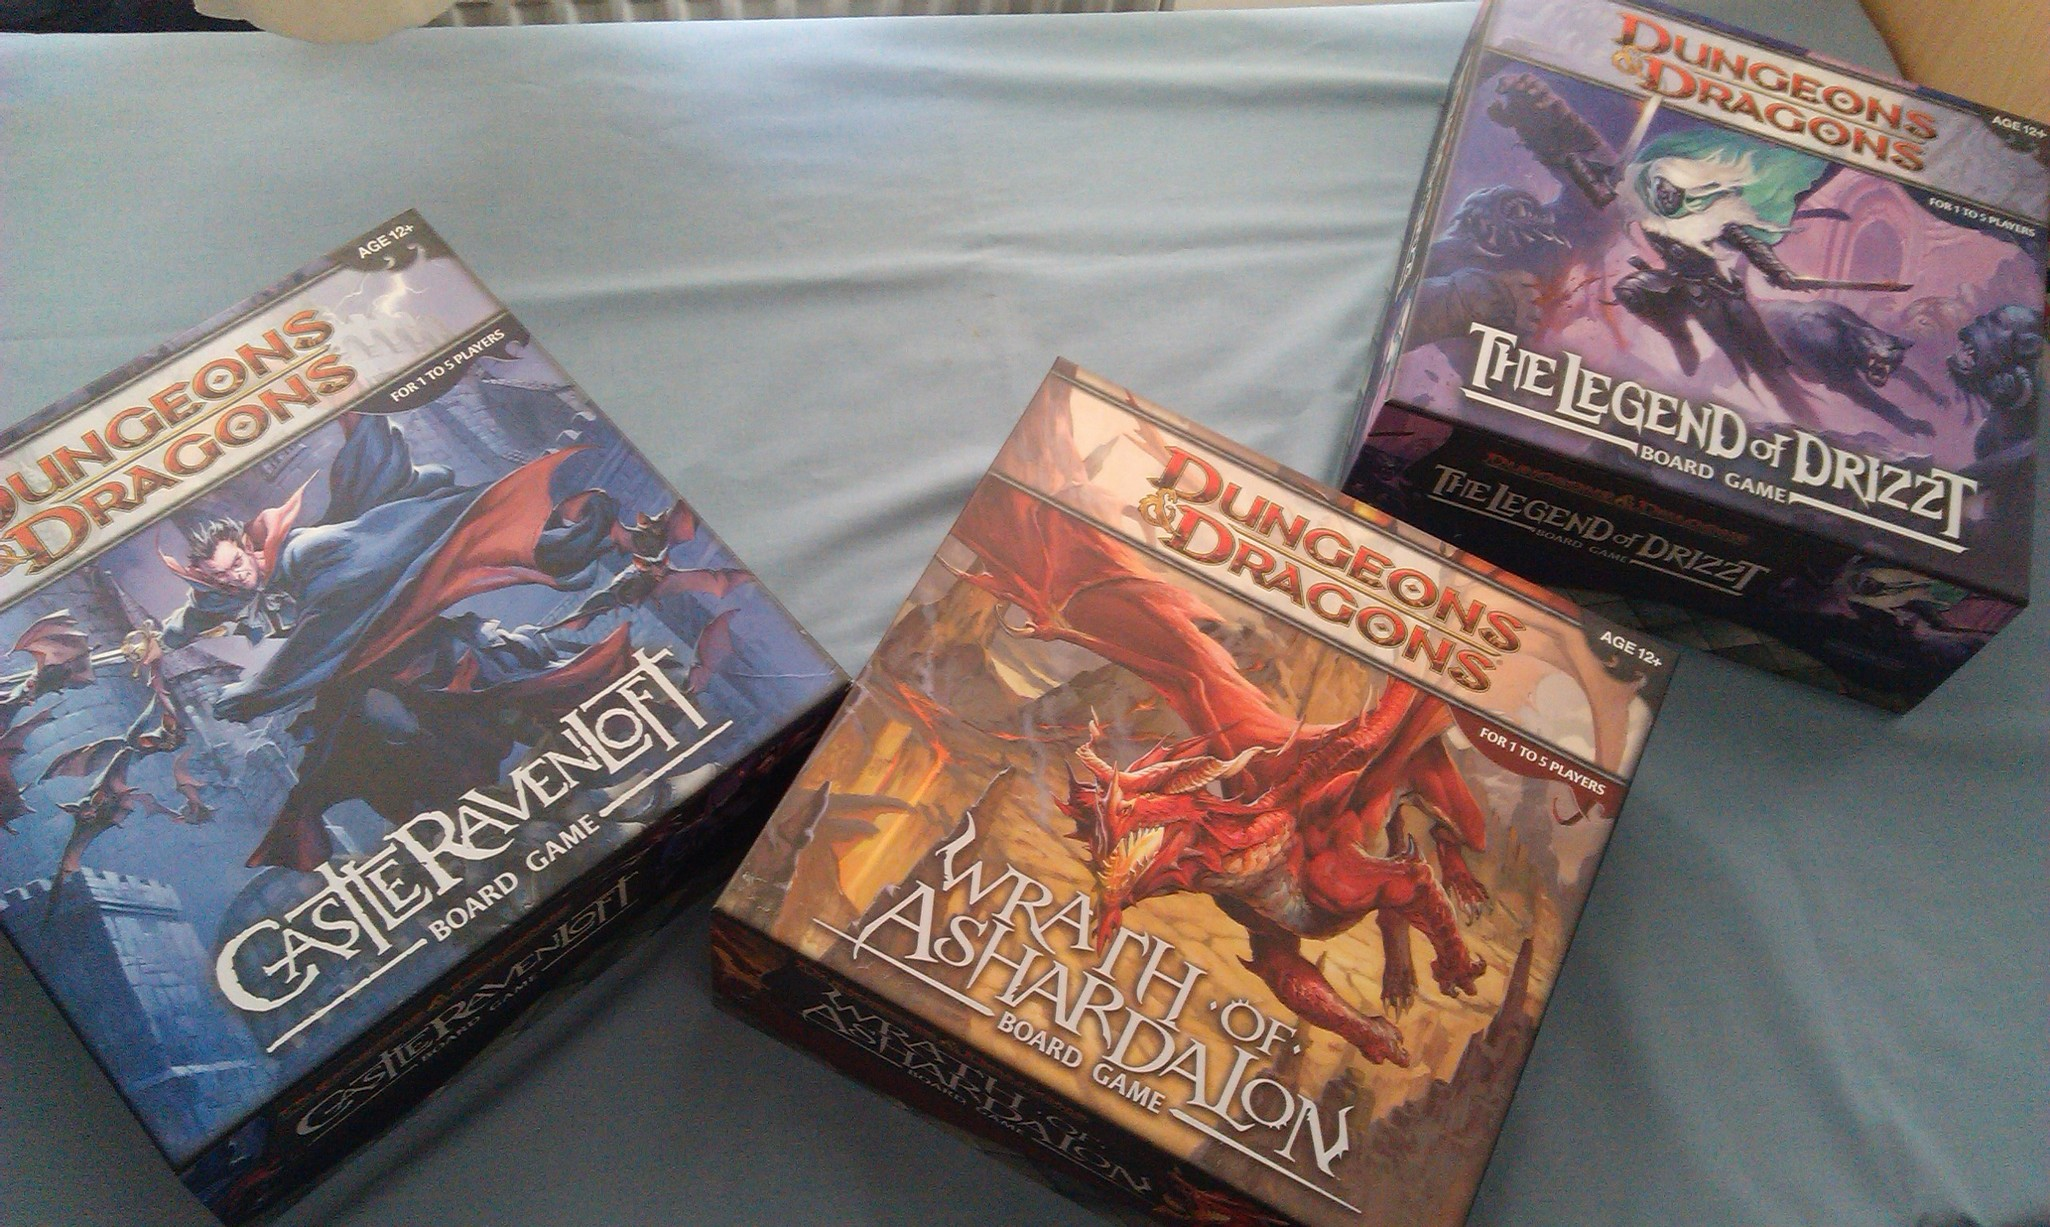 dungeons and dragons type games